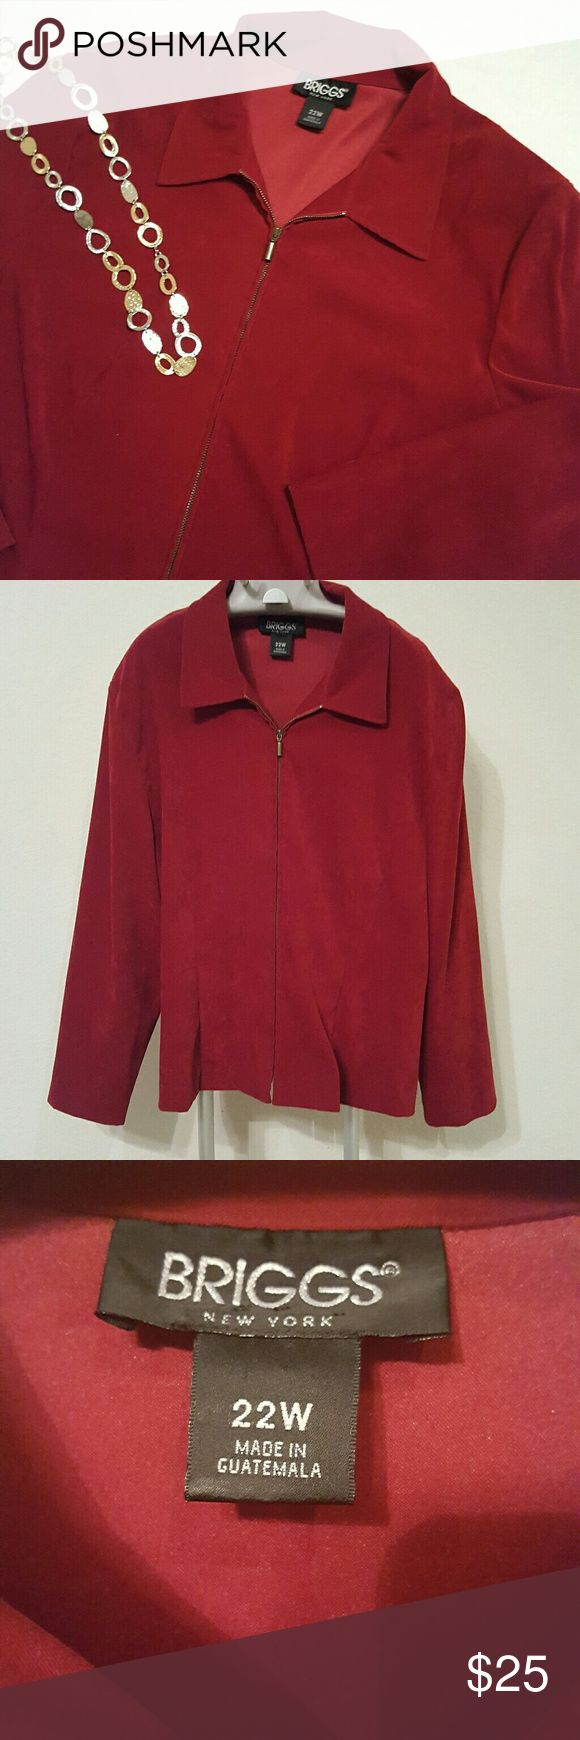 Briggs New York Red Zip Up Jacket Briggs New York red jacket with gold zipper. Beautiful swade like jacket. Looks great zipped or loose. 97% Polyester, 3% Spandex Briggs New York Jackets & Coats Blazers